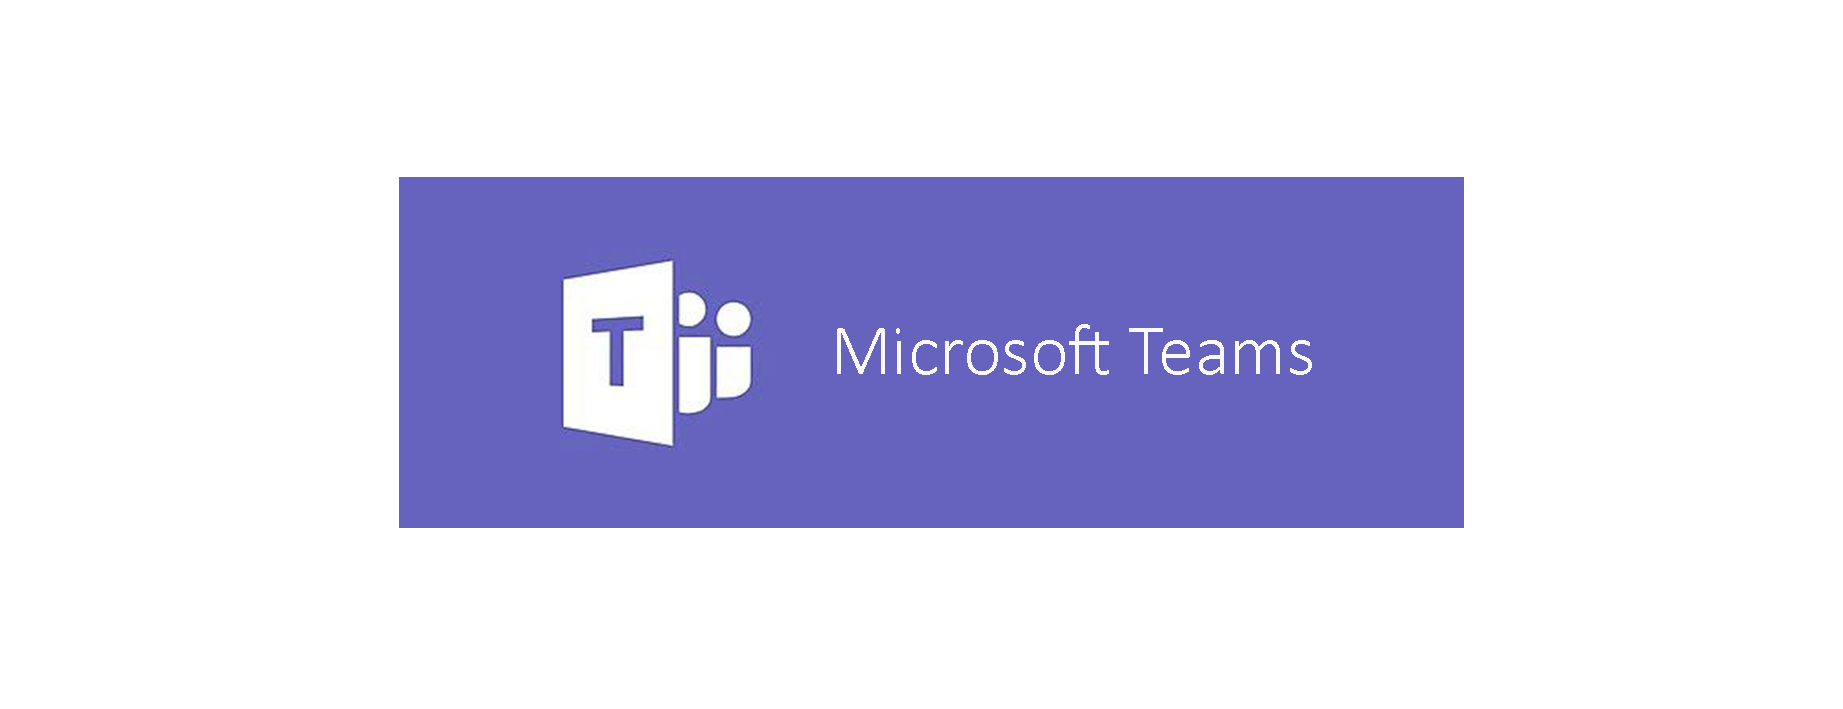 Microsoft Teams, App für Teamwork, Teamarbeits Tool